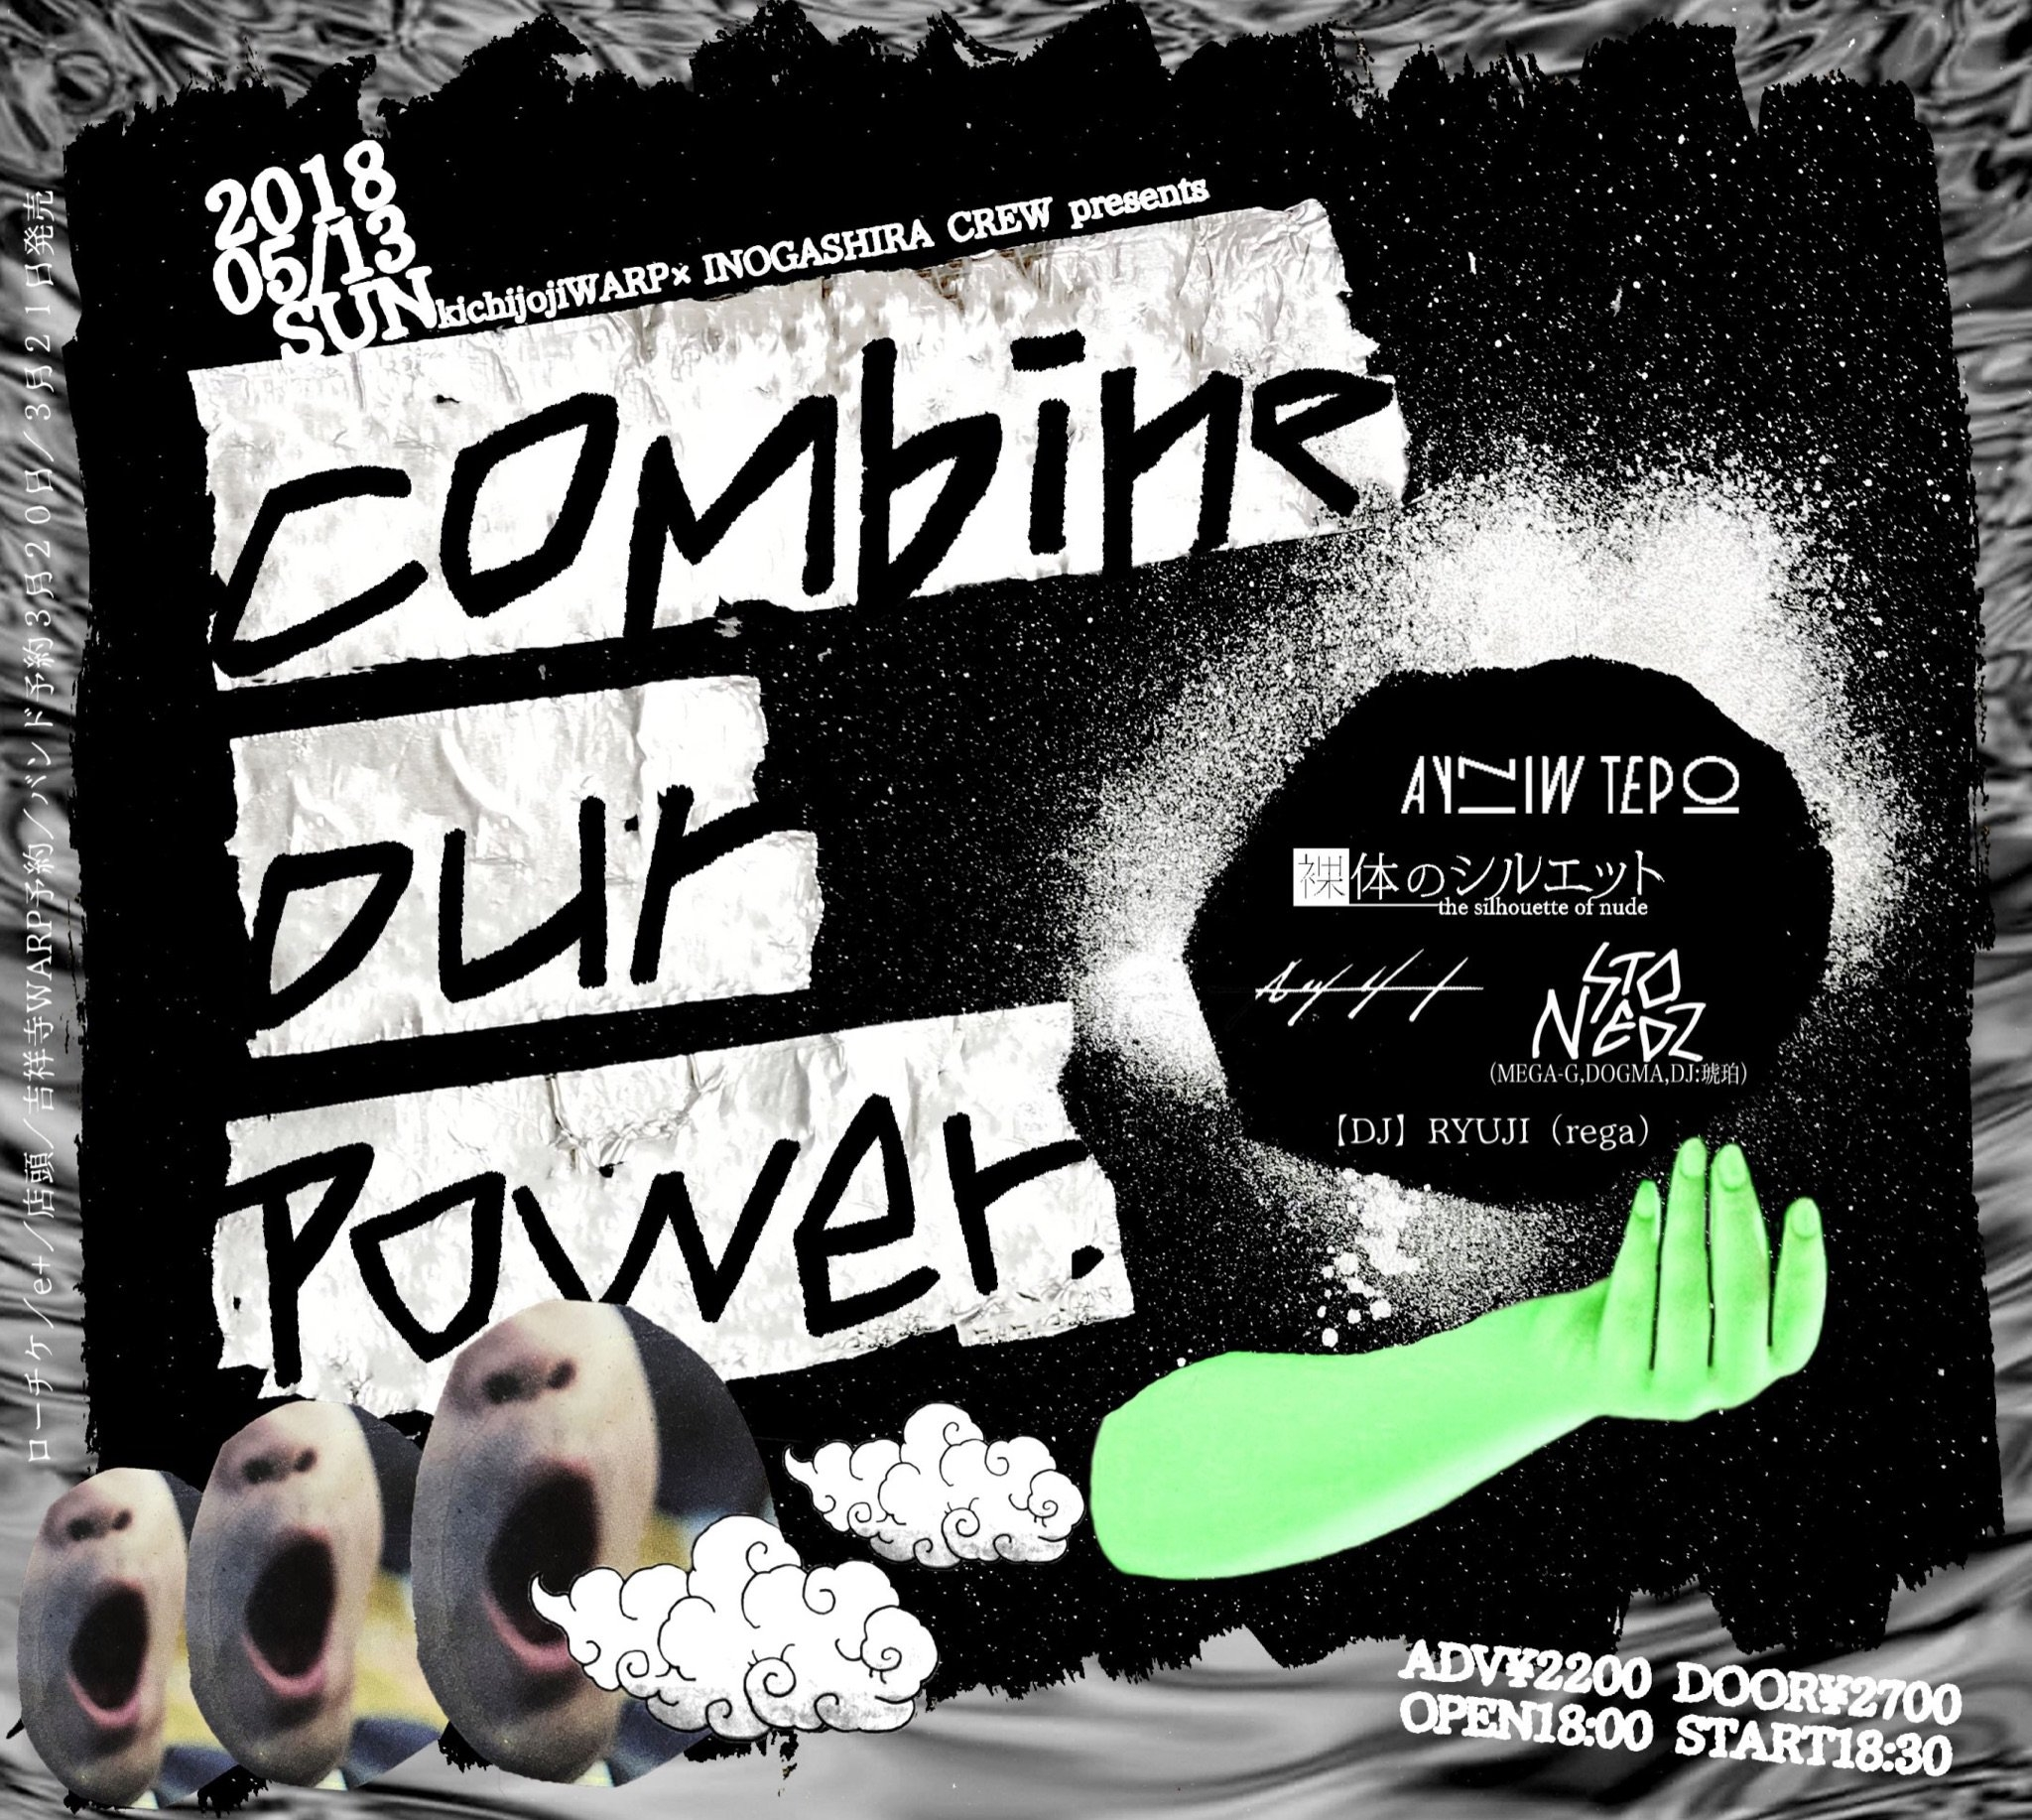 吉祥寺WARP×INOGASHIRA CREW presents 「 Combine our power. 」